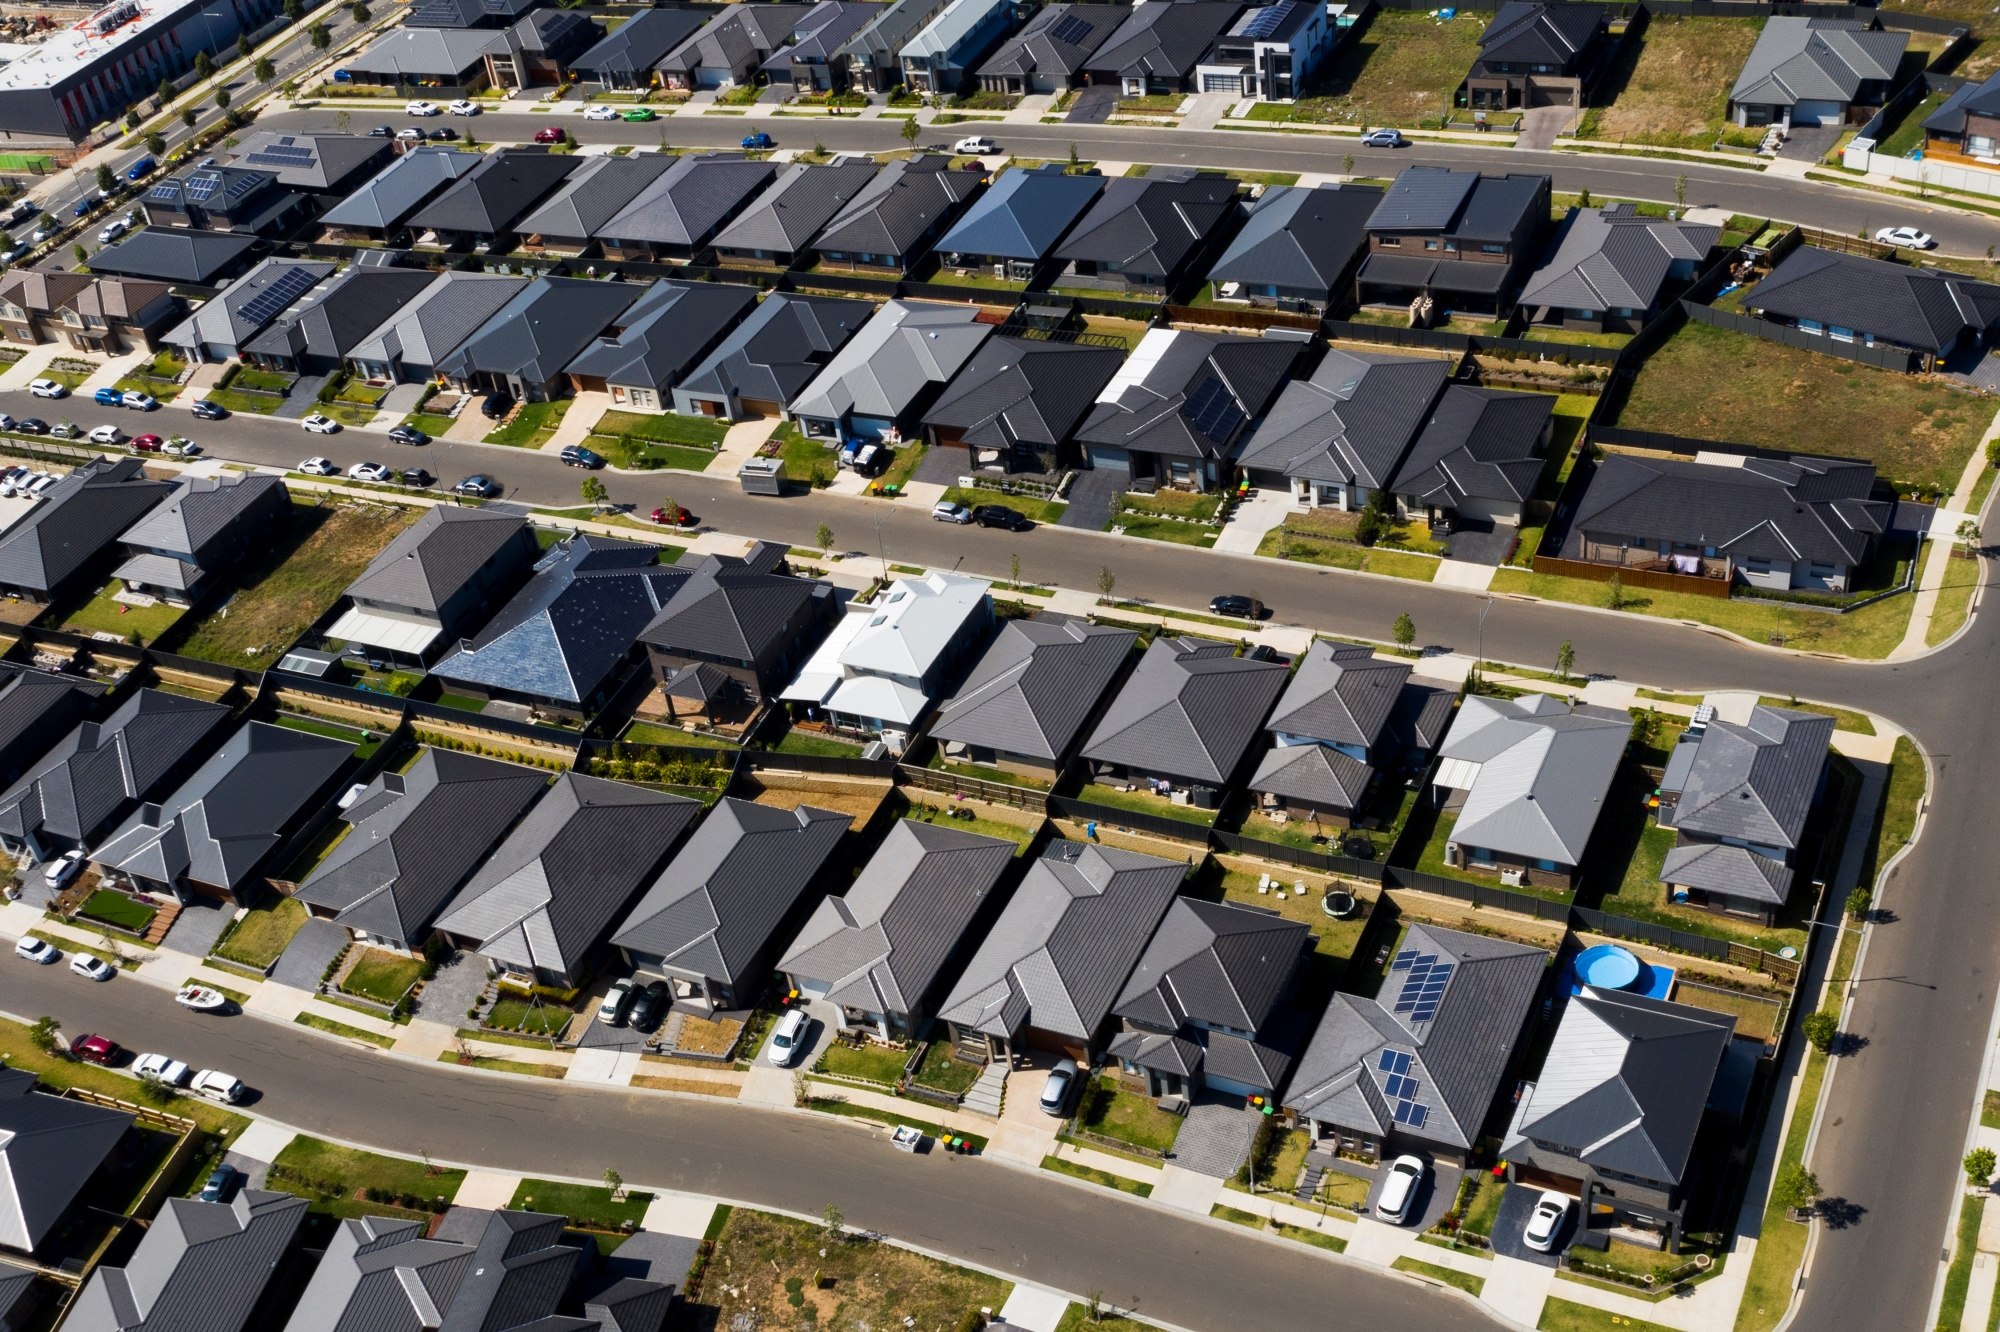 Sydney's New Suburbs Are Too Hot for People to Live In - Bloomberg